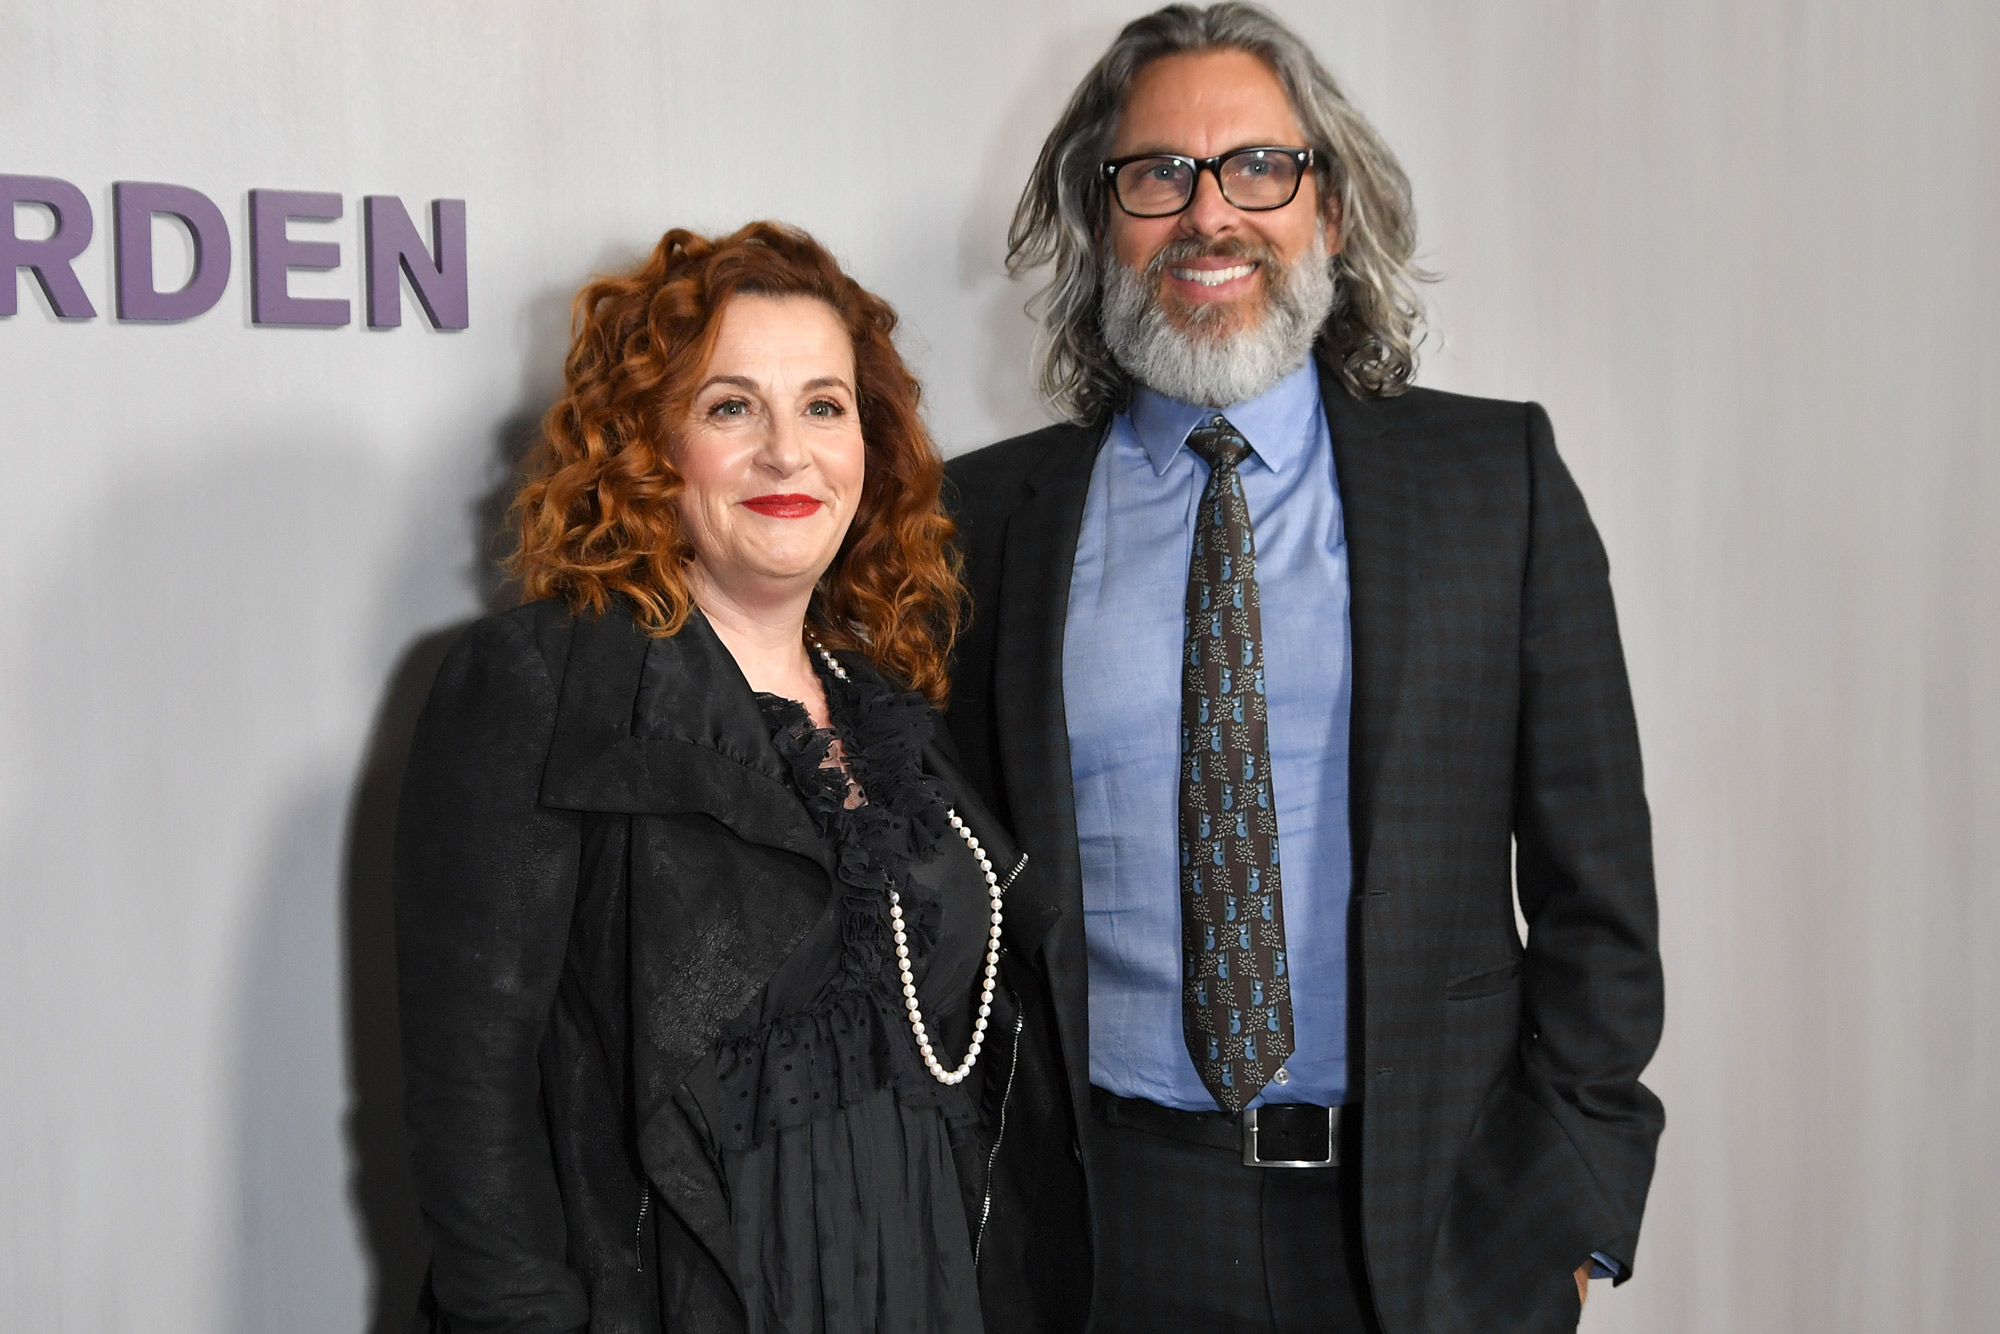 https://www.rollingstone.com/tv/tv-news/ghost-ship-fire-tv-show-canceled-michael-chabon-ayelet-waldman-927690/